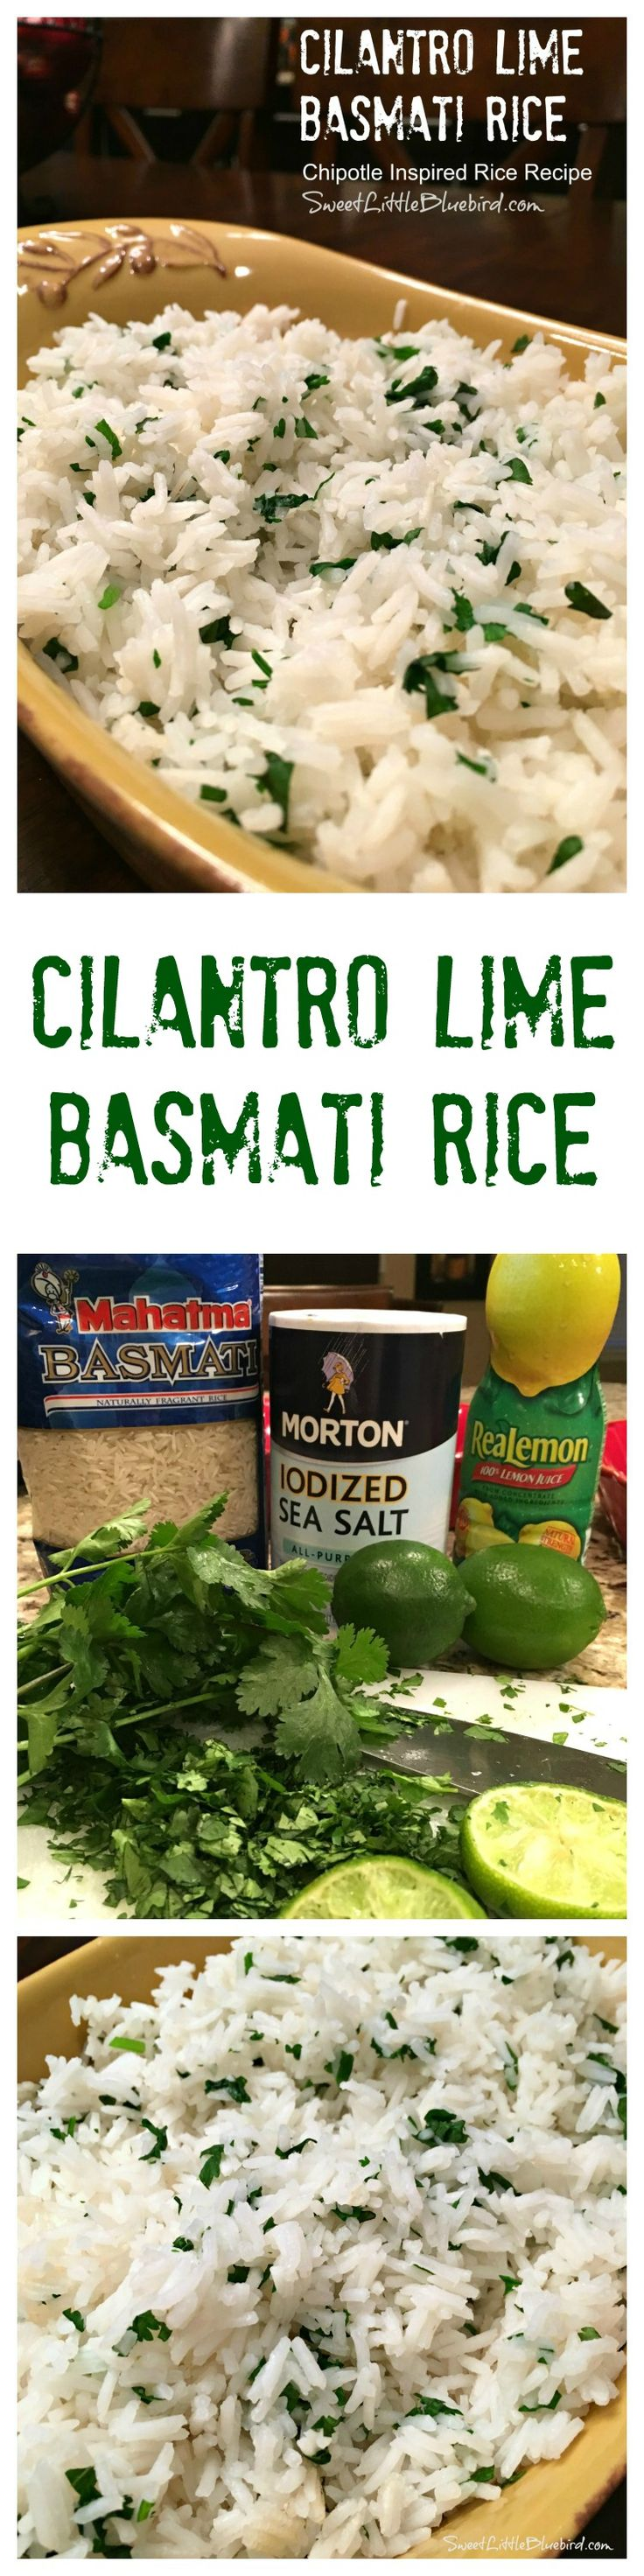 CILANTRO LIME BASMATI RICE {Inspired by Chipotle} - If you're a fan of Chipotle's rice, then you'll love this simple recipe that can be made on the stove or in a rice cooker. So GOOD!! |  SweetLittleBluebird.com